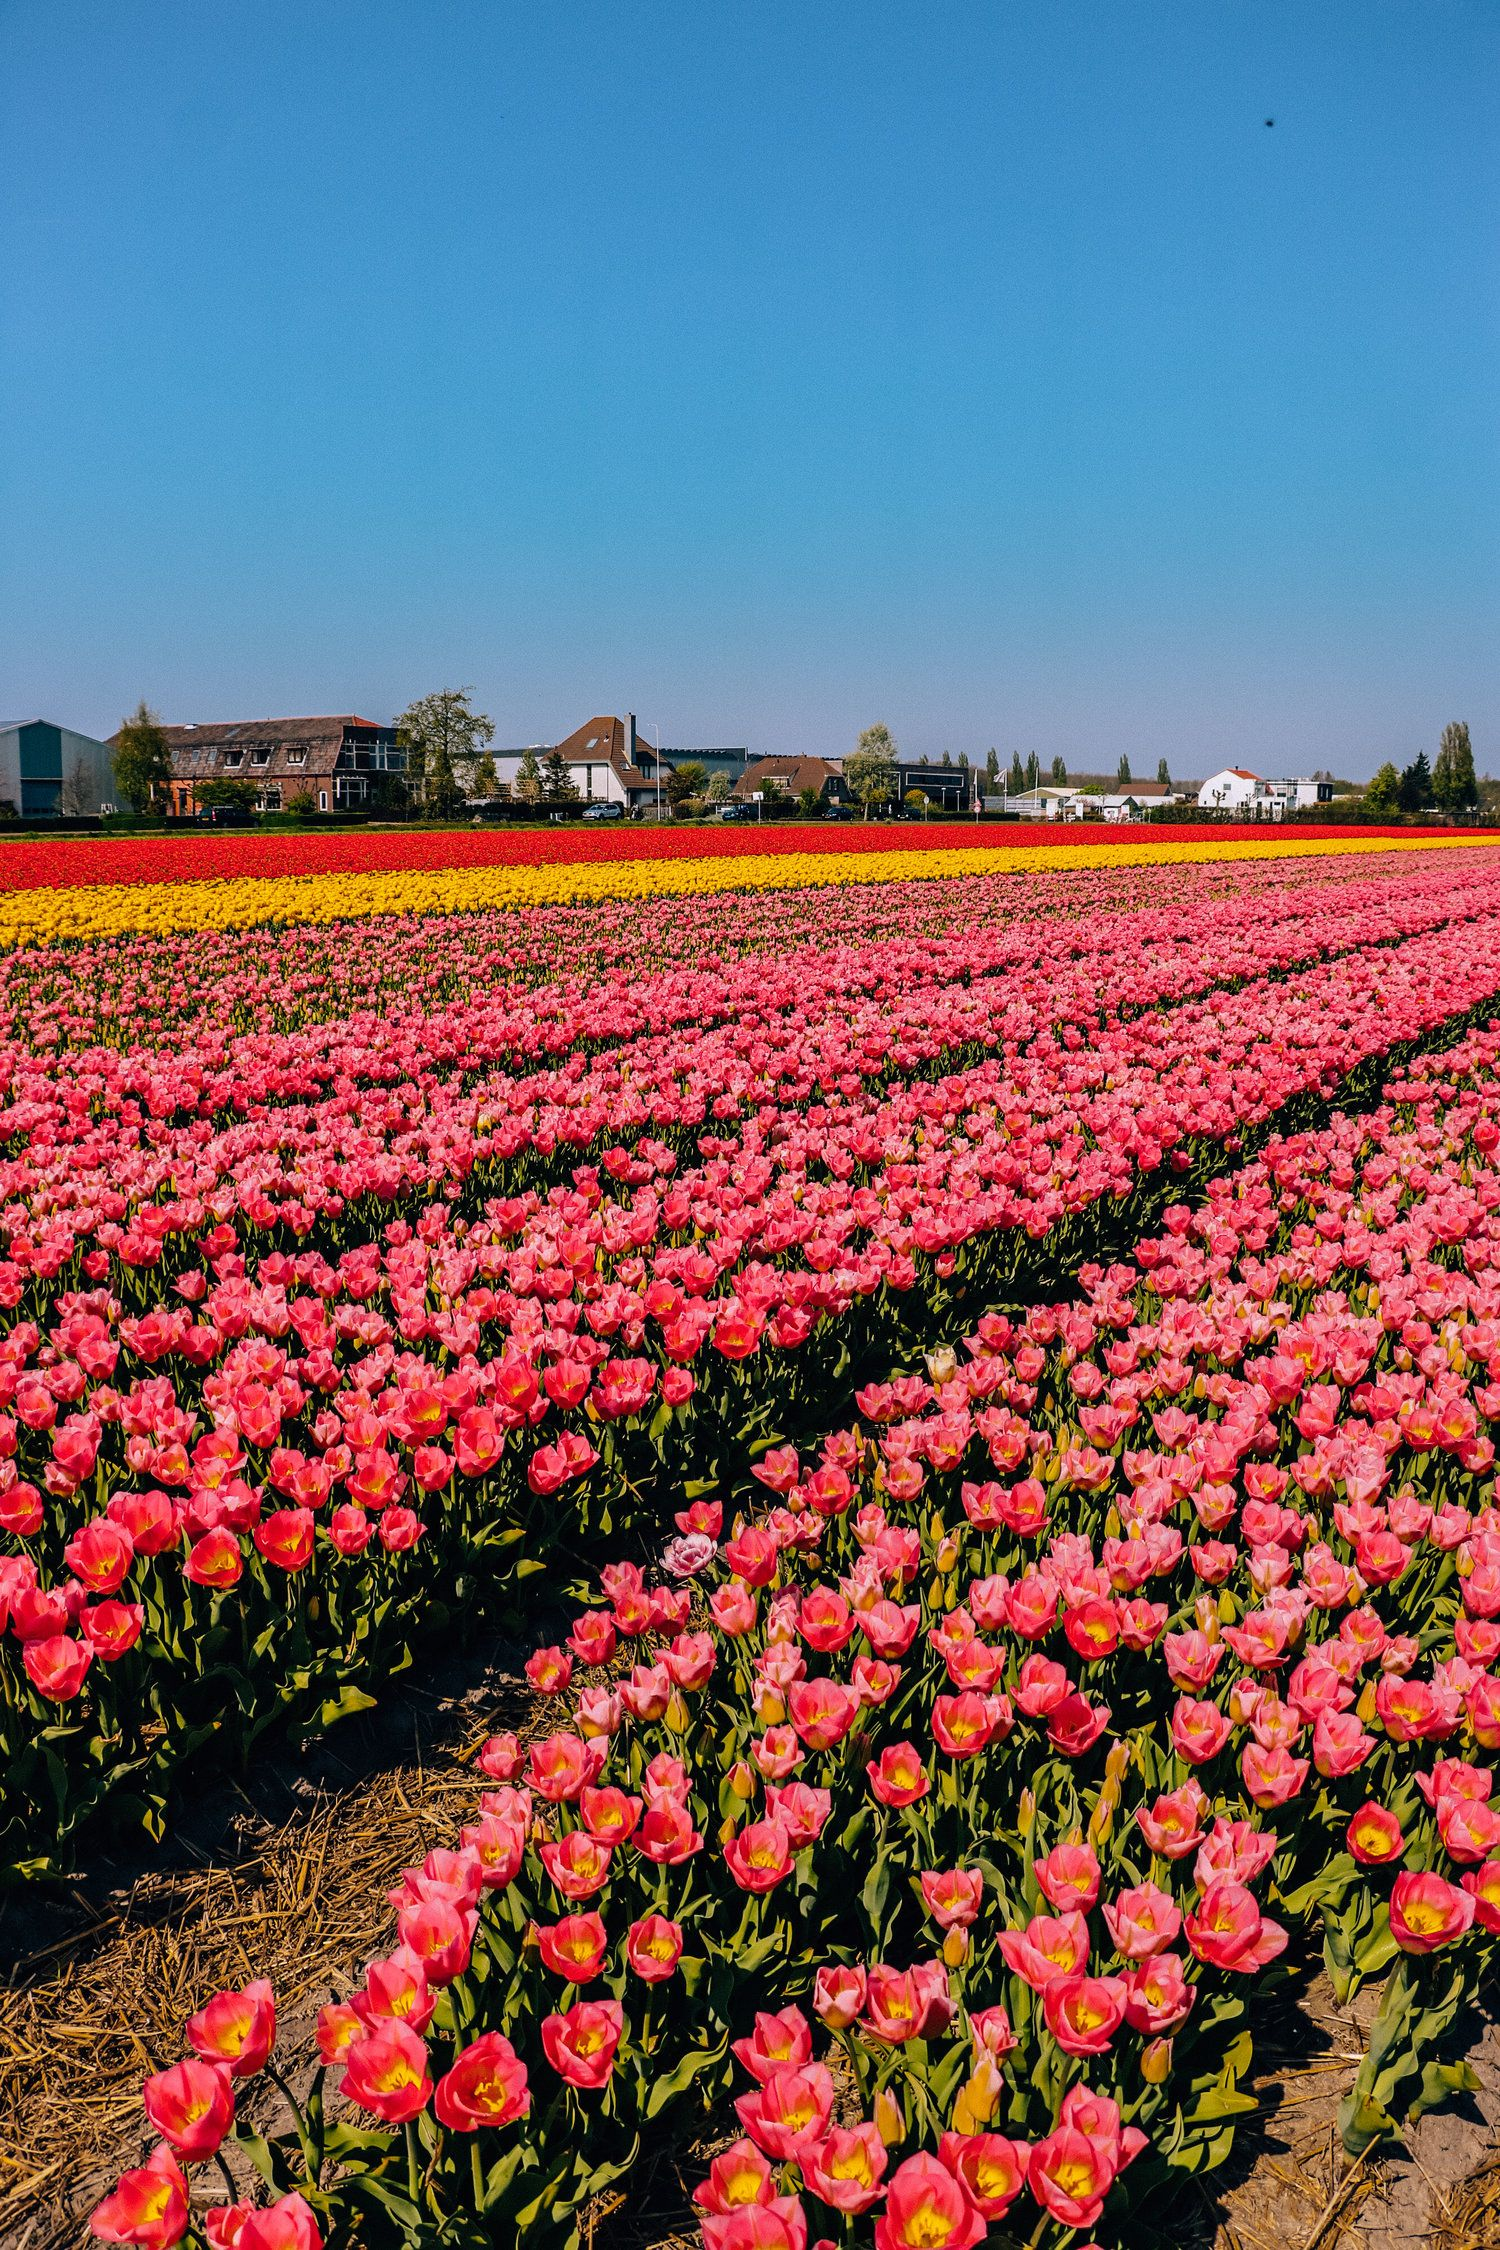 A Guide To Seeing The Tulips In Lisse On A Budget In 2020